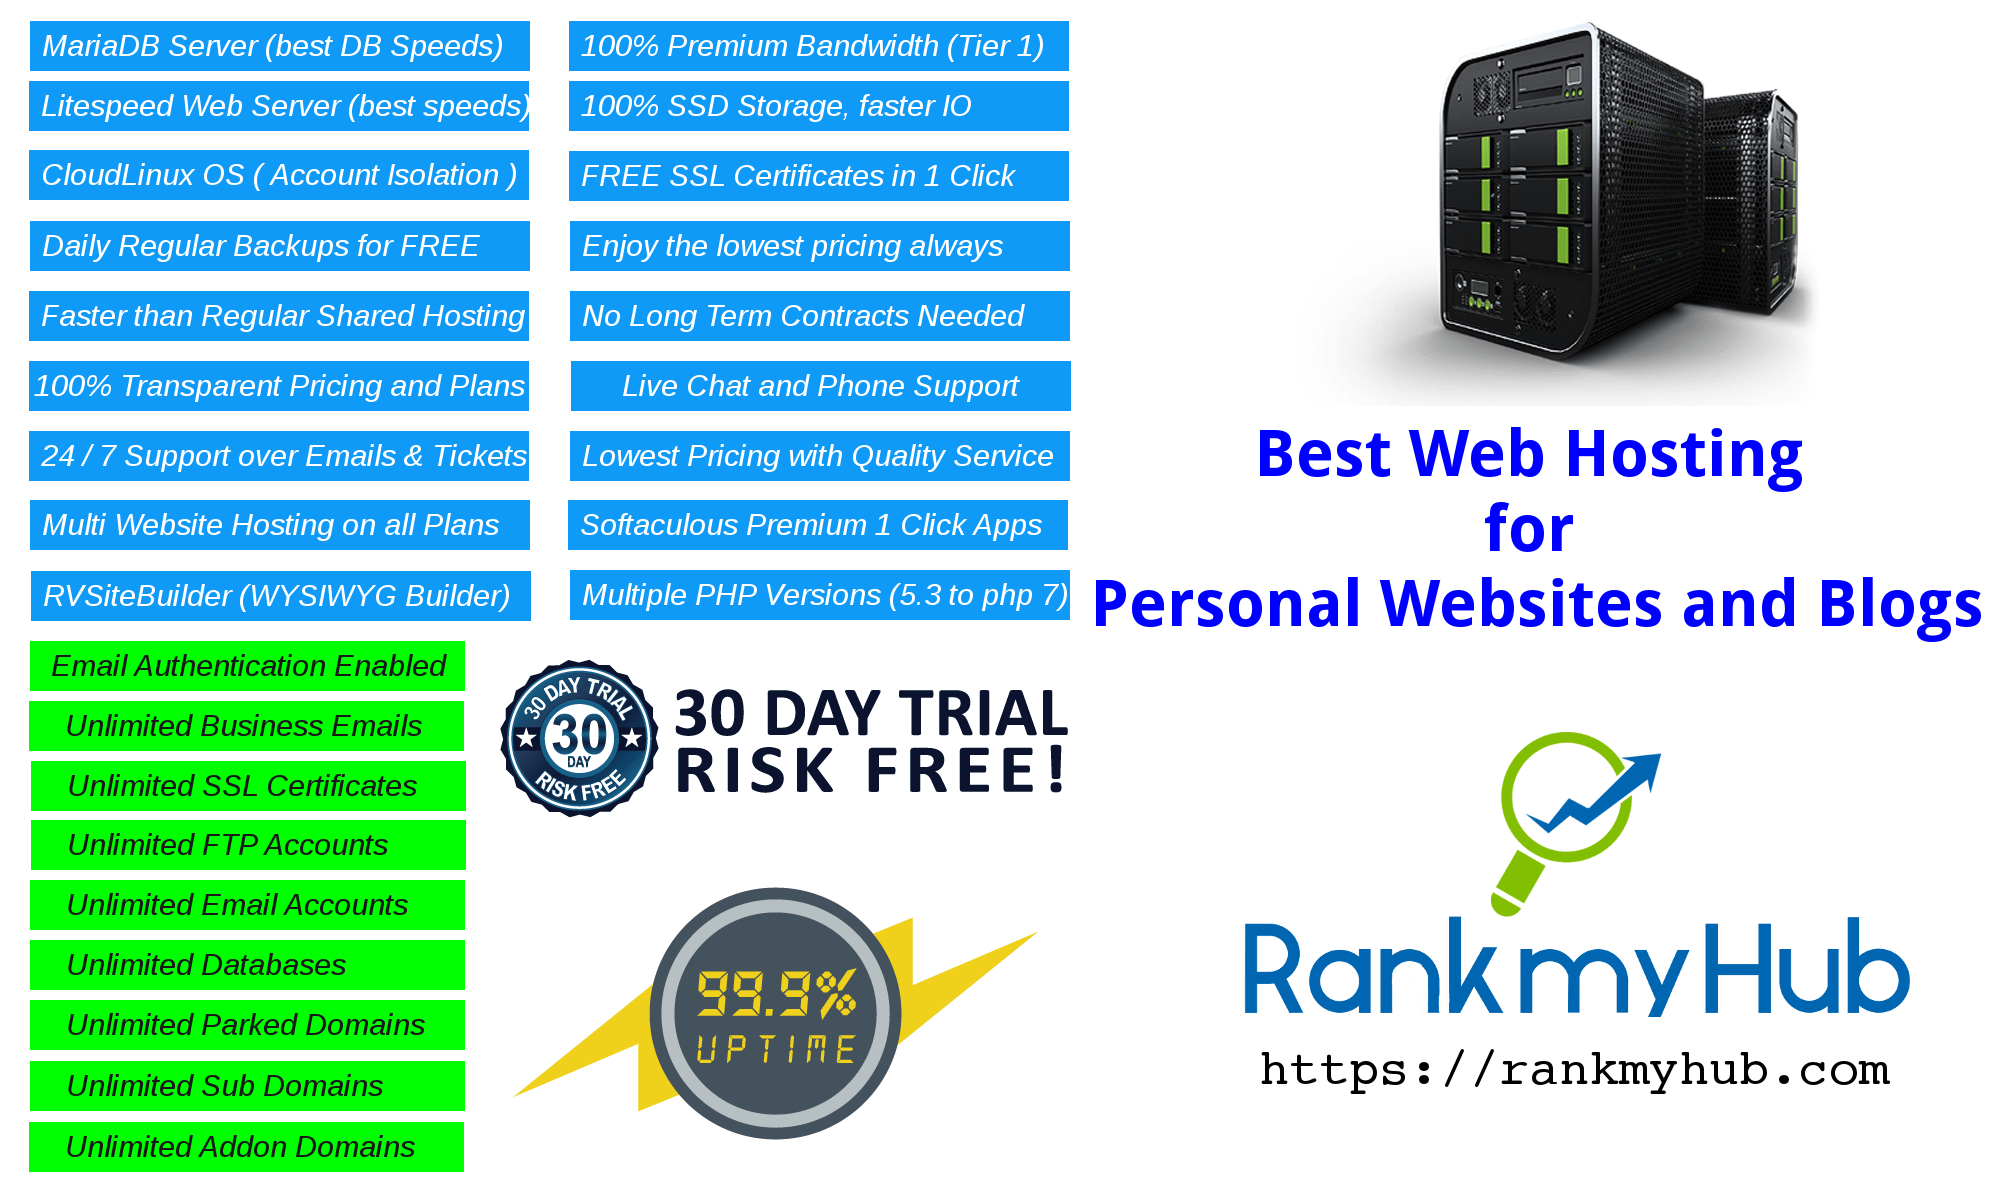 Best web hosting services in india get life tips best web hosting for personal websites and blogs xflitez Choice Image